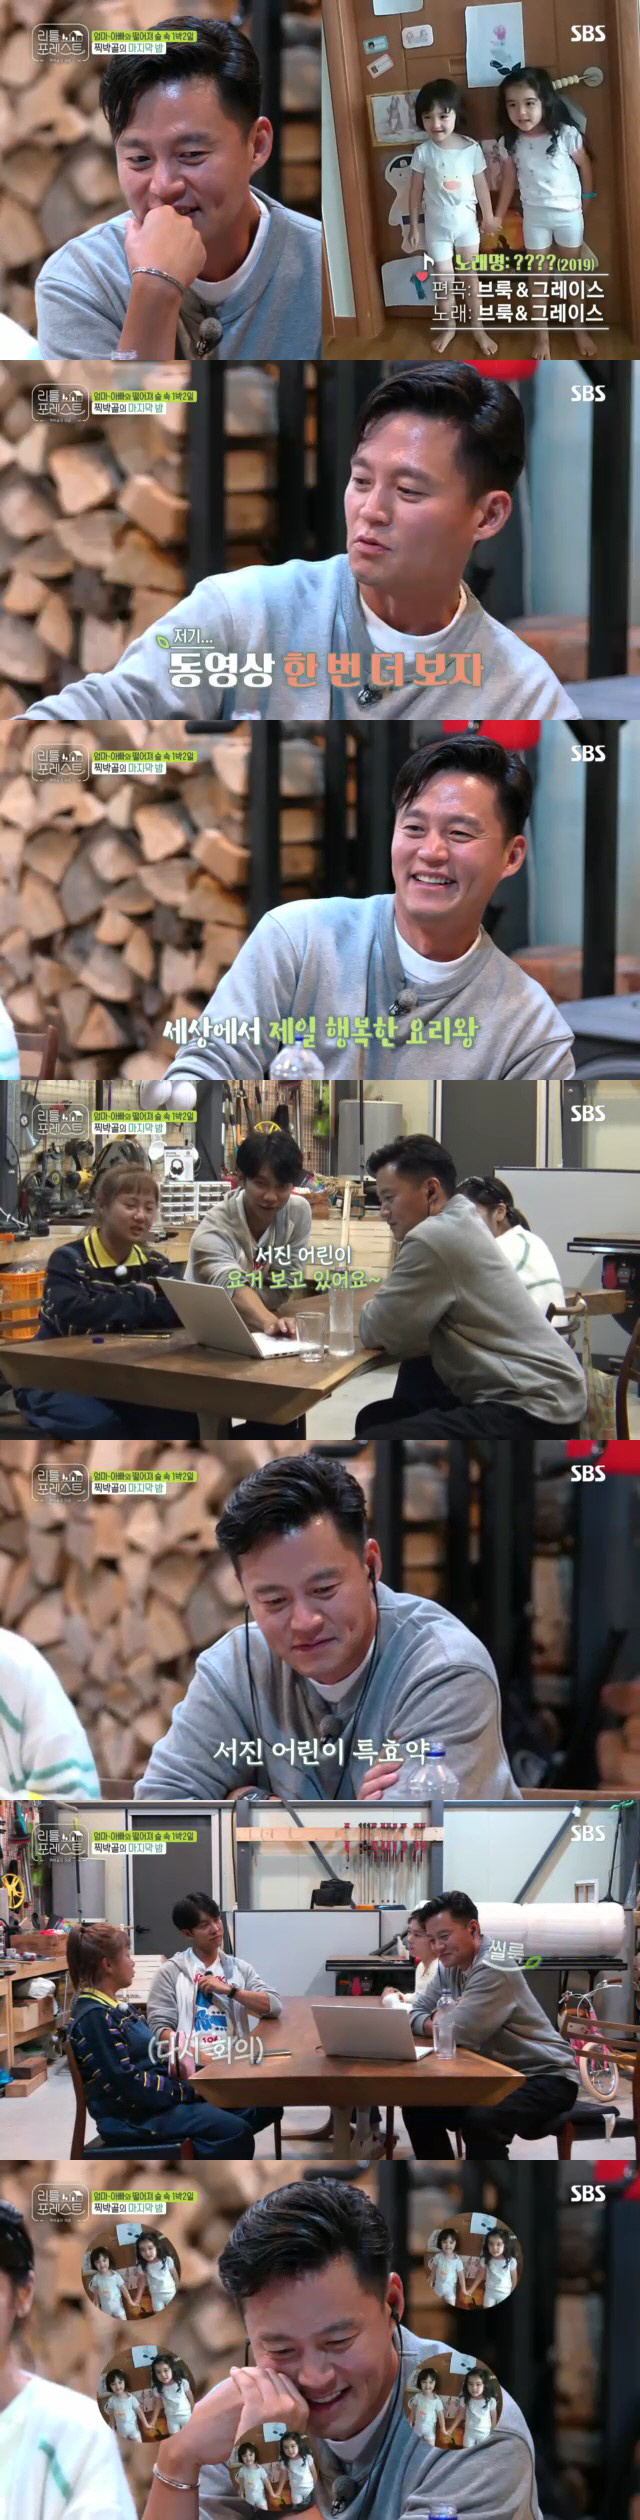 <p>The last 1 days broadcast SBS little forestin the photo, Lee Seung-gi, Park Na-rae, Jung So min Little People and of this specific prepare appear. The members of the Little People and the last of the shooting to prepare for a solid hard had. Lee Seung-gi is the egg hatching has brought, and Park Na-rae is the large suds that can make tools was prepared.</p><p>This photo is the twin sisters, Brooke and Alias Grace with with happened. Before departure this is the I nephew love both when there is an awkward lineand first have yourself and little ones only at the time of awkwardness expressed. This in songs like Brook and Alias Grace for the songs soothing, but they sing and want the bickering to this in the photo embarrassed.</p><p>The two children take long to see that was not easy. Brook and Alias Grace is set upon your arrival in each cart one by one, accounted for, and this is unavoidable, and a cart two dragged the and saw. Brook and Alias Grace is a ice cream and also Bickering said. Eventually this in is ready to cry with Brooke to appease the ice cream you purchase additional products.</p><p>Little with the Chicks hatch, the scene has caliber. Lee Seung-gi is the egg of life be thought not to. Children so the chicken is old and better than ever was. I am new to and said,incubators bring to why it was revealed. Born the first scene in the little they to had, especially Alias Grace is a hatch before leaving not and full of curiosity for the Chicks watched. But if this is for the hand drawn parts come forward, Park Na-rae is the fear in the eyes splashed with hilarious channels saw. I have beenPlay for a laugh, I found myself in.</p><p>This in and Park Na-rae is a little of them for dinner and the potatoes retaining interest and squid Pollock making out. However, little is low, this expression is created and brought cookies to eat because the RICE Well did not eat. Uncle, aunts mind not Brook Hall as the meal had, and this is in direct children to find the kids